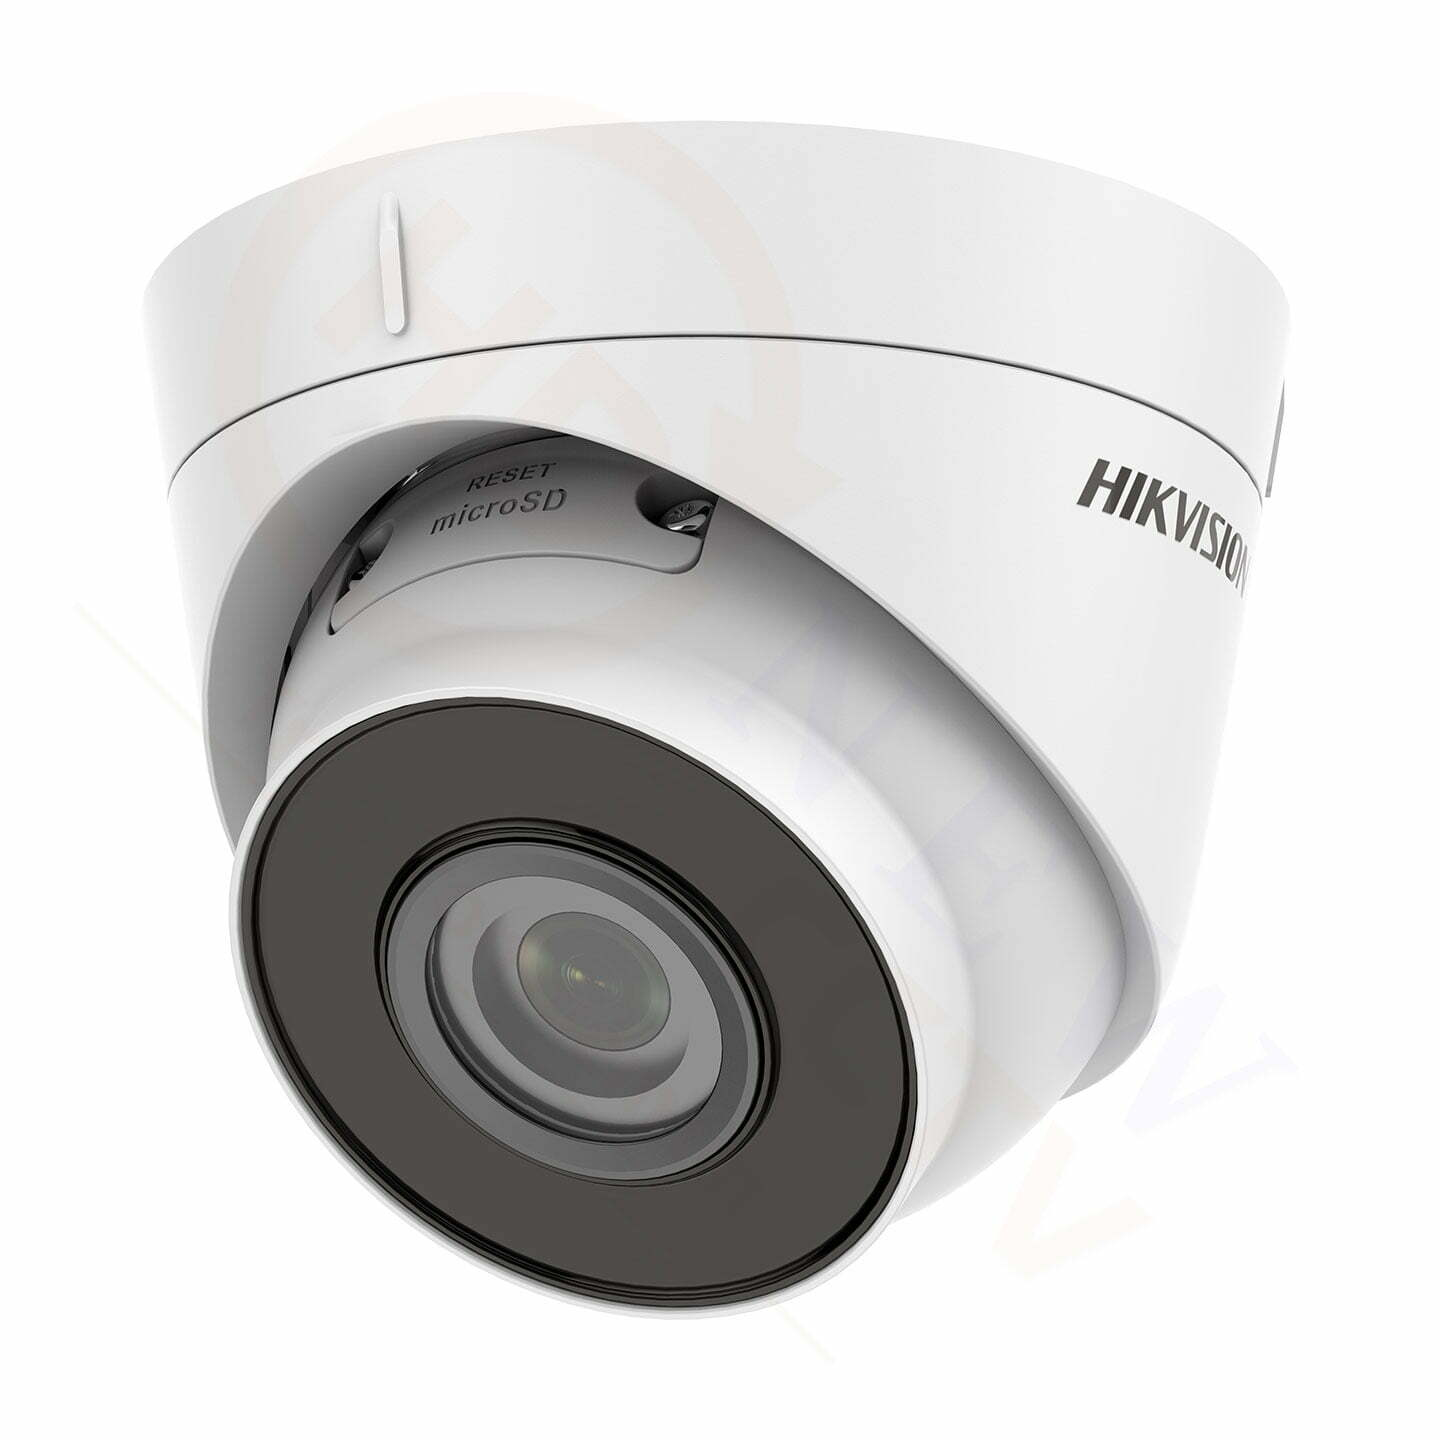 Hikvision DS-2CD1343G0E-IF | 4MP IP PoE Turret Camera | HDnew CCTV